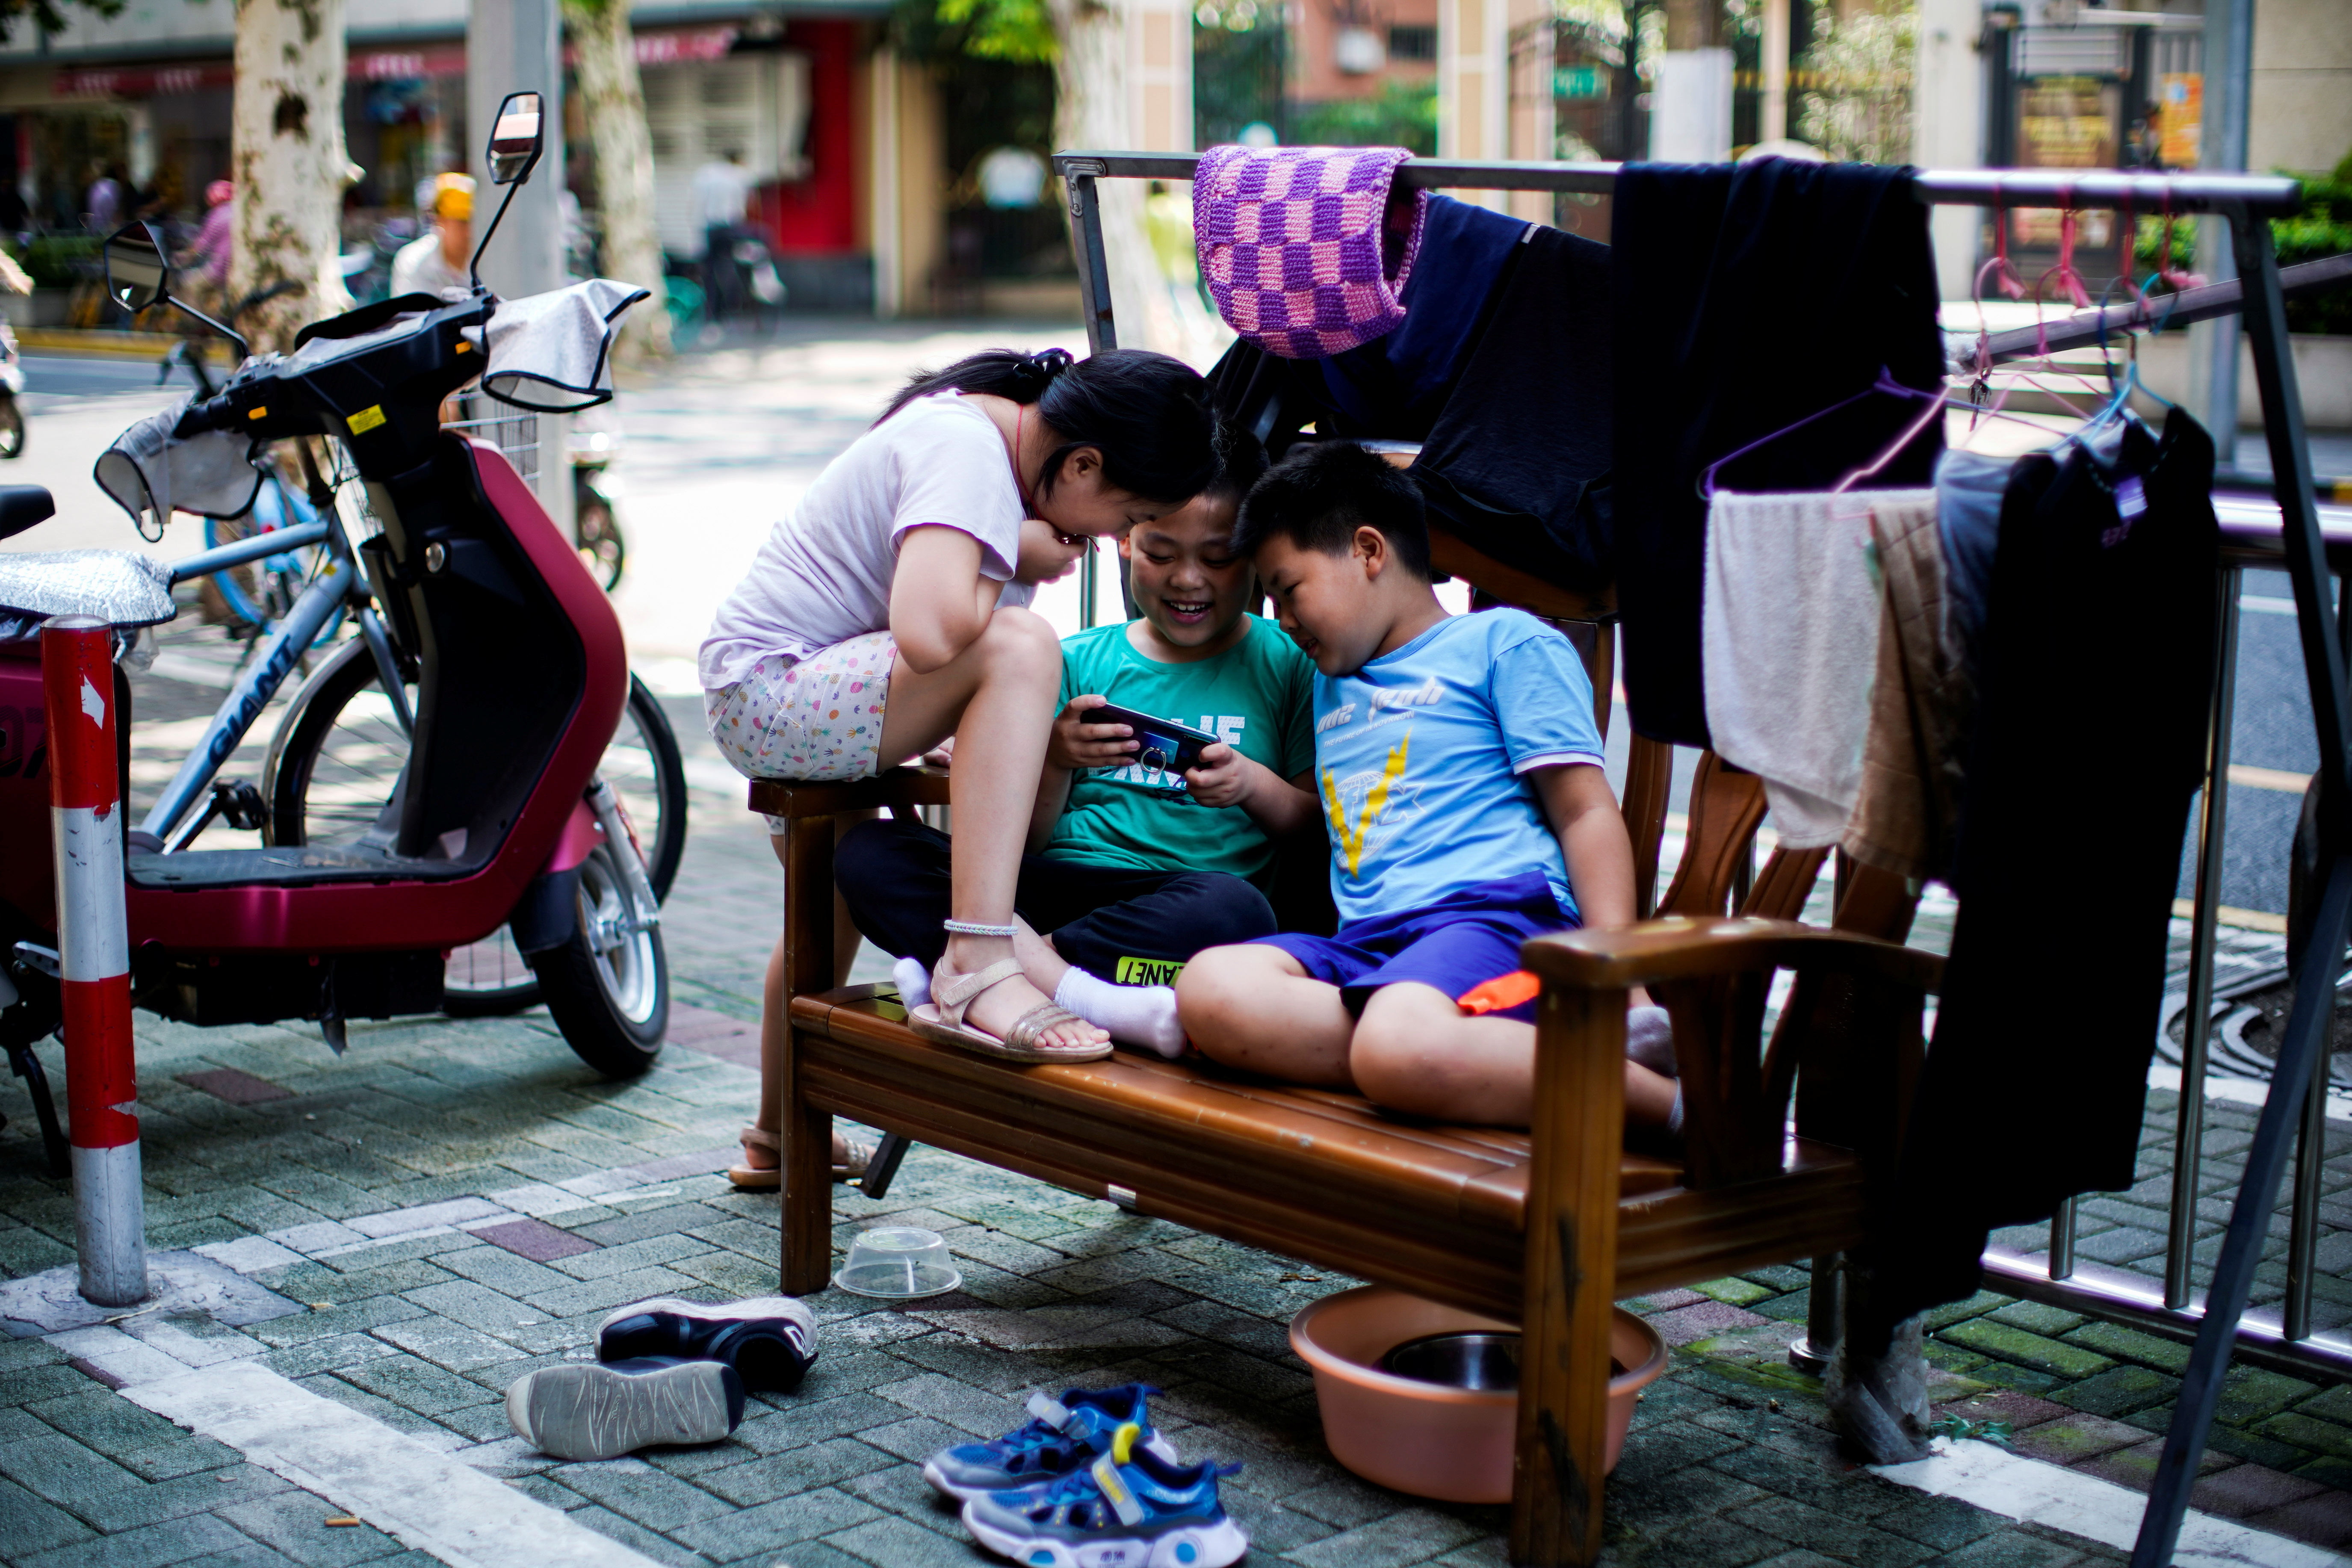 Children look at a phone on a street in Shanghai, China August 28, 2021. REUTERS/Aly Song